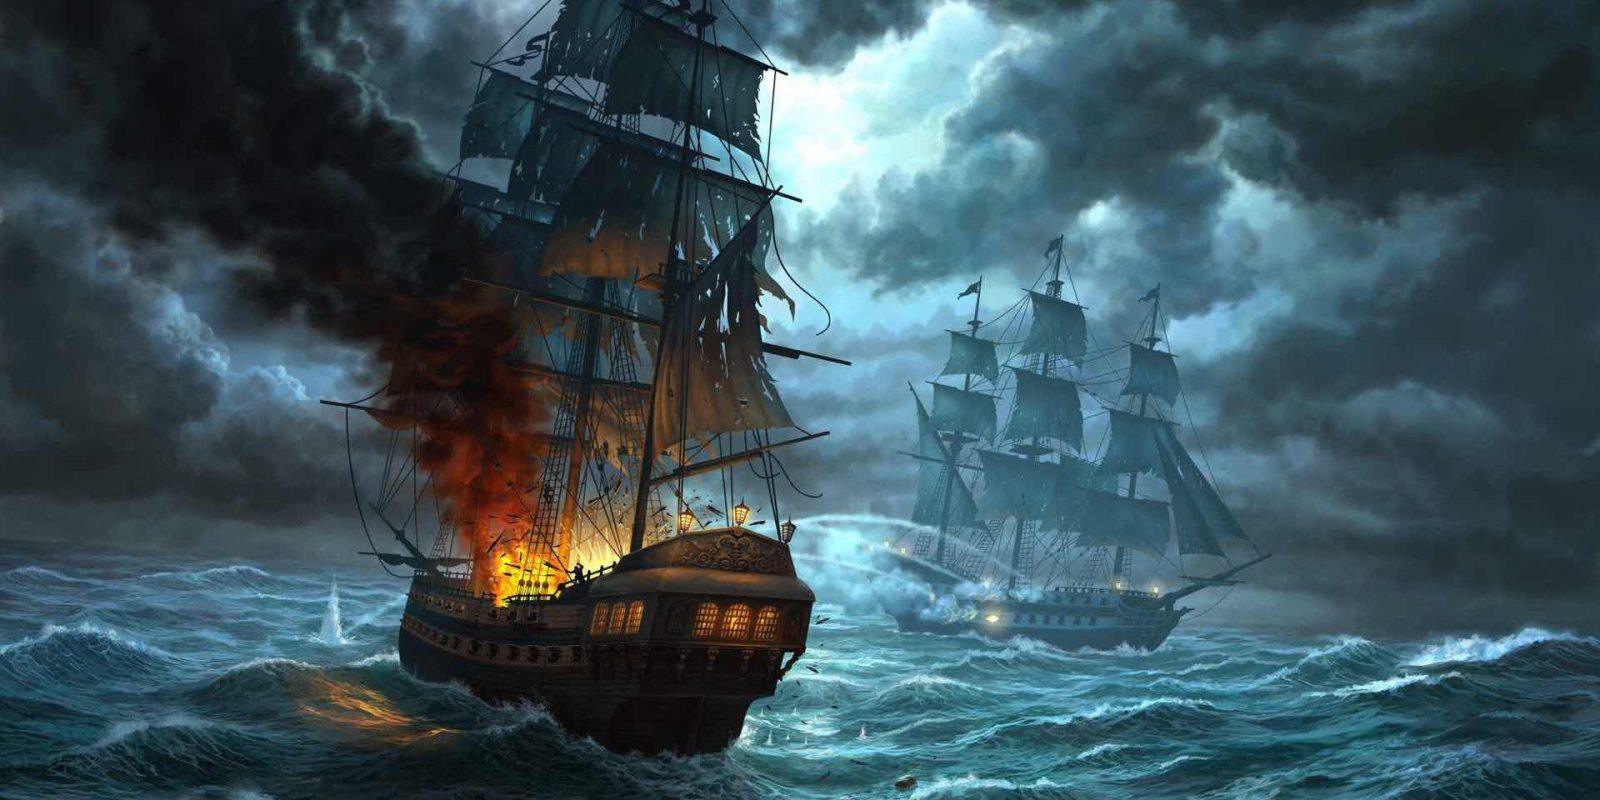 Become a pirate and assemble a crew in Tempest for iOS while it's $4 (50% off)